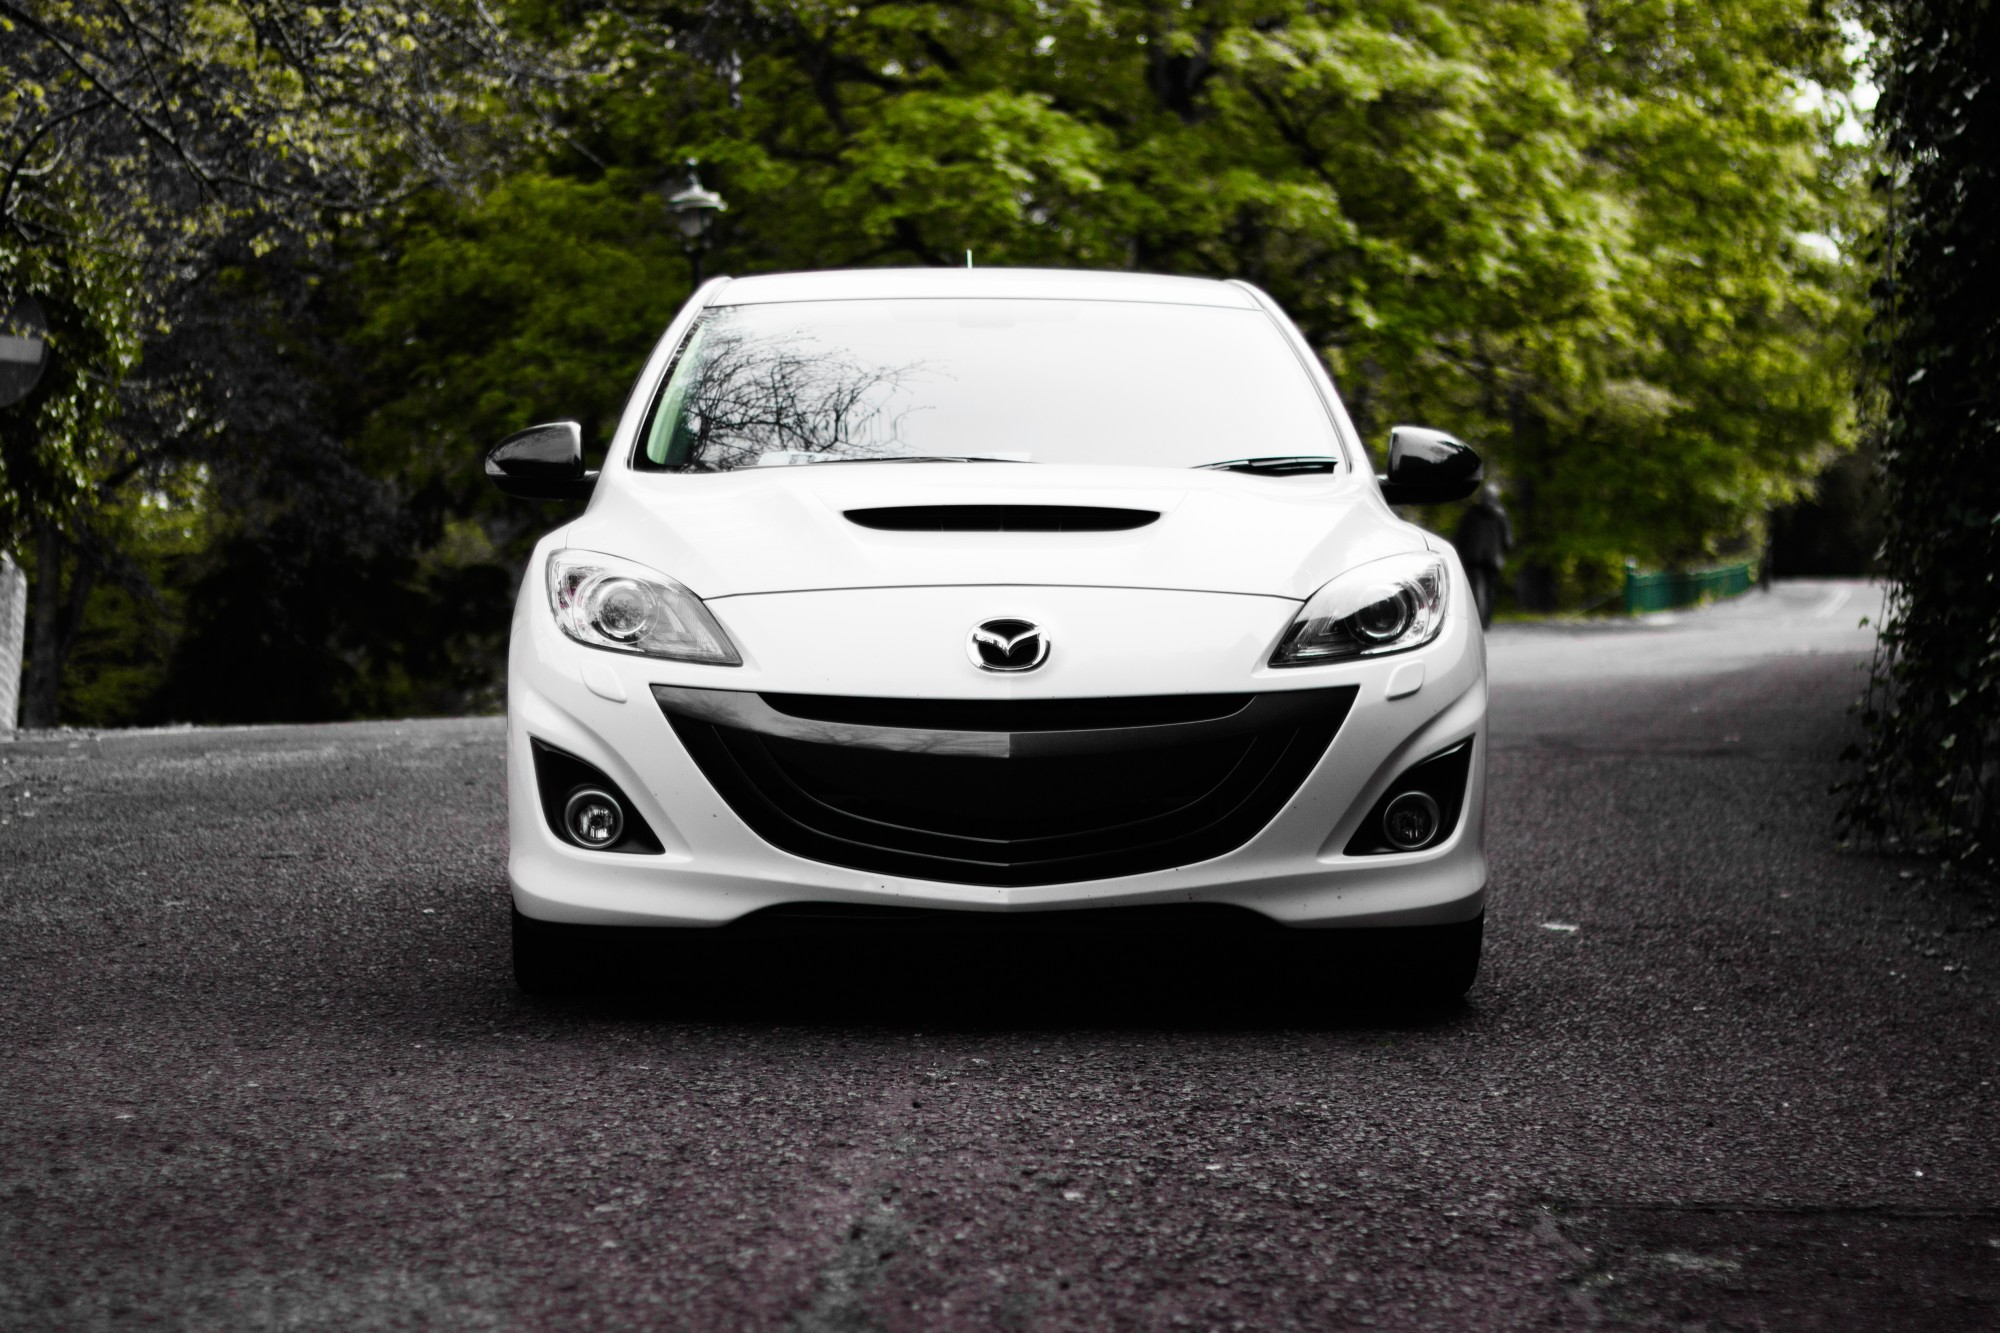 Owning a Mazda